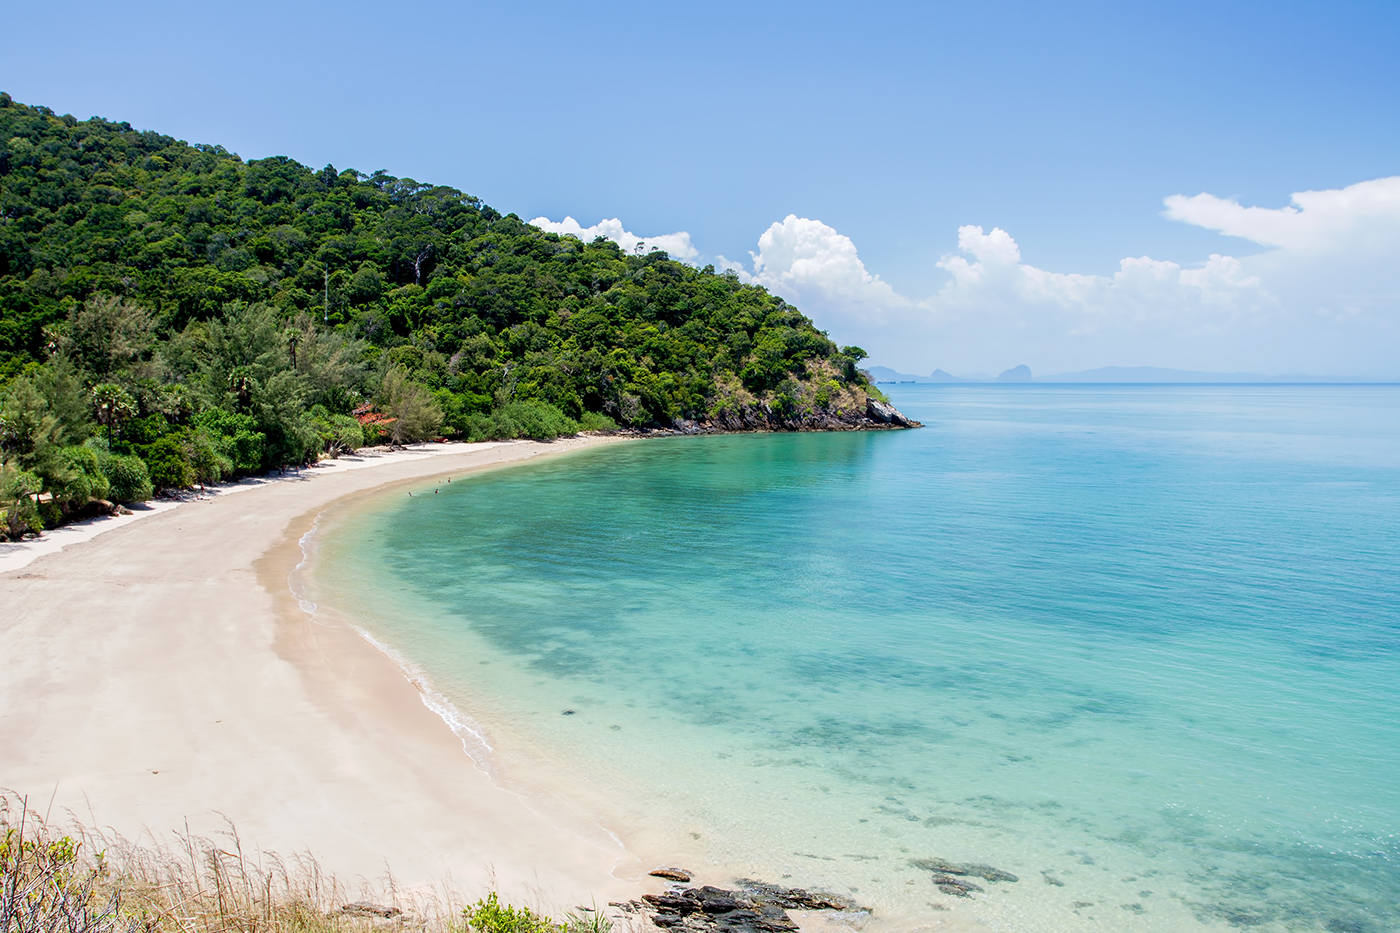 Koh Lanta Thailand The Islands Secret Beaches Beyond